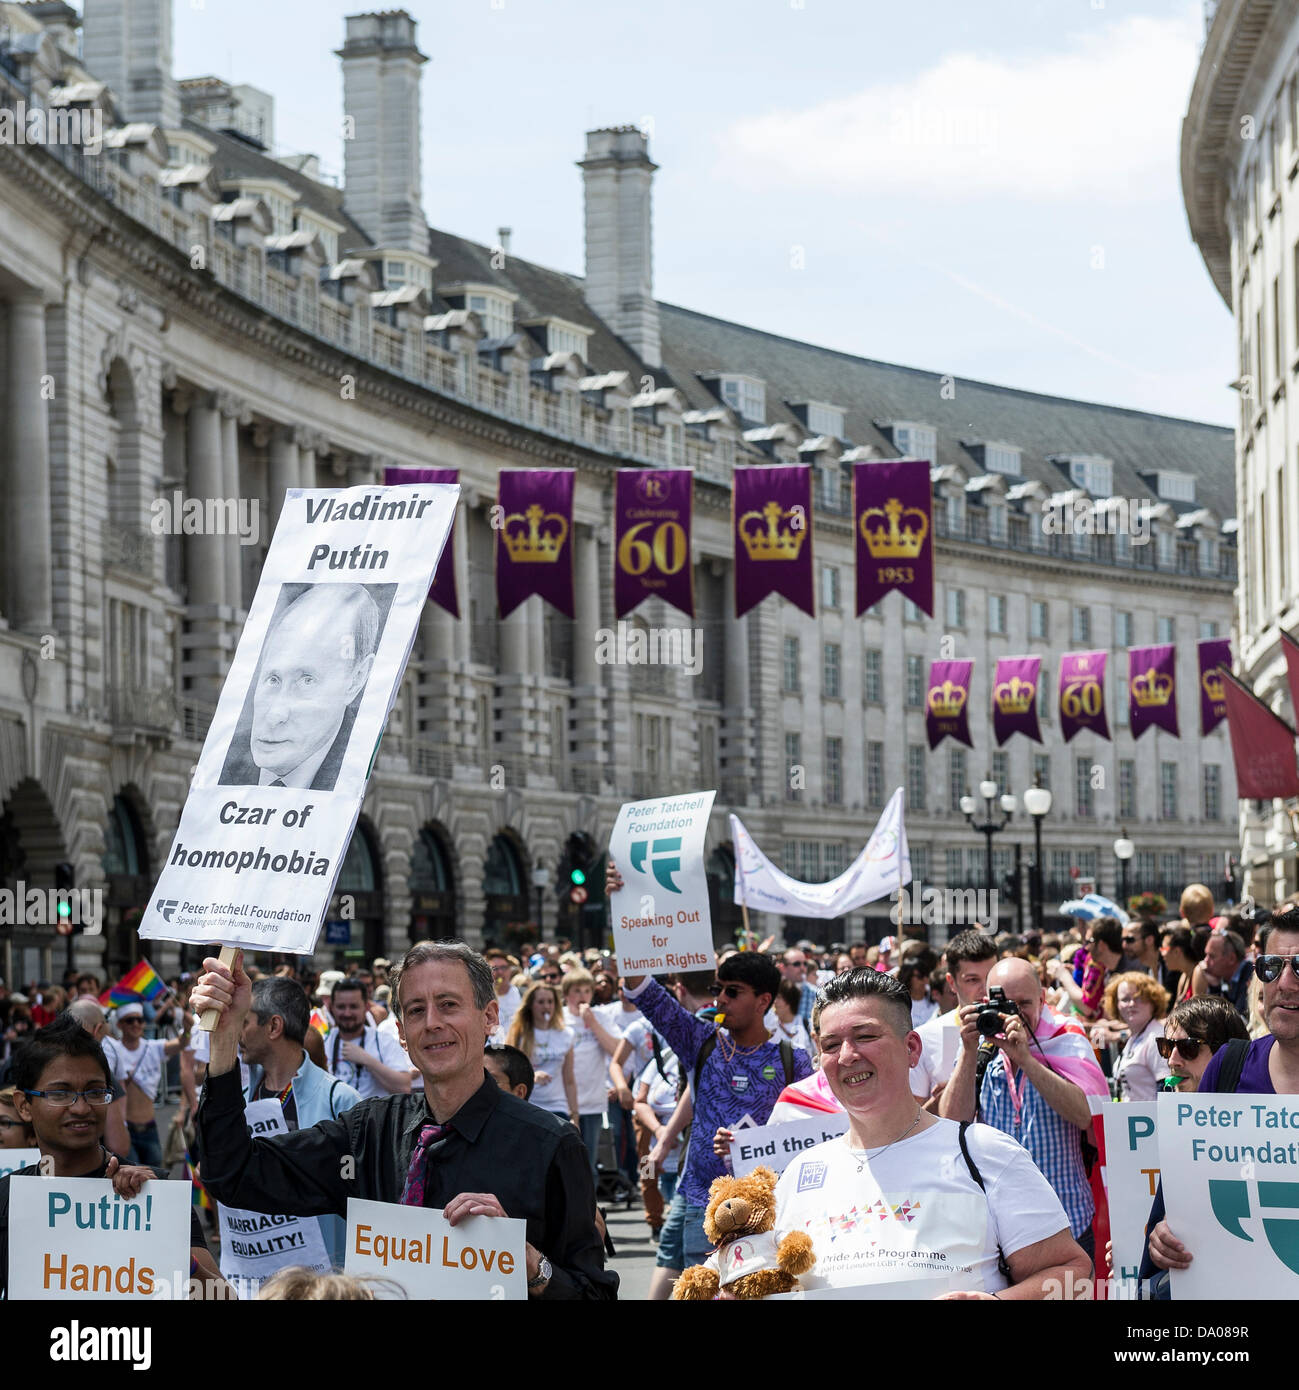 London, UK. 29th June 2013.  Peter Tatchell participating in the London Pride parade on Regent's Street.Photographer: - Stock Image